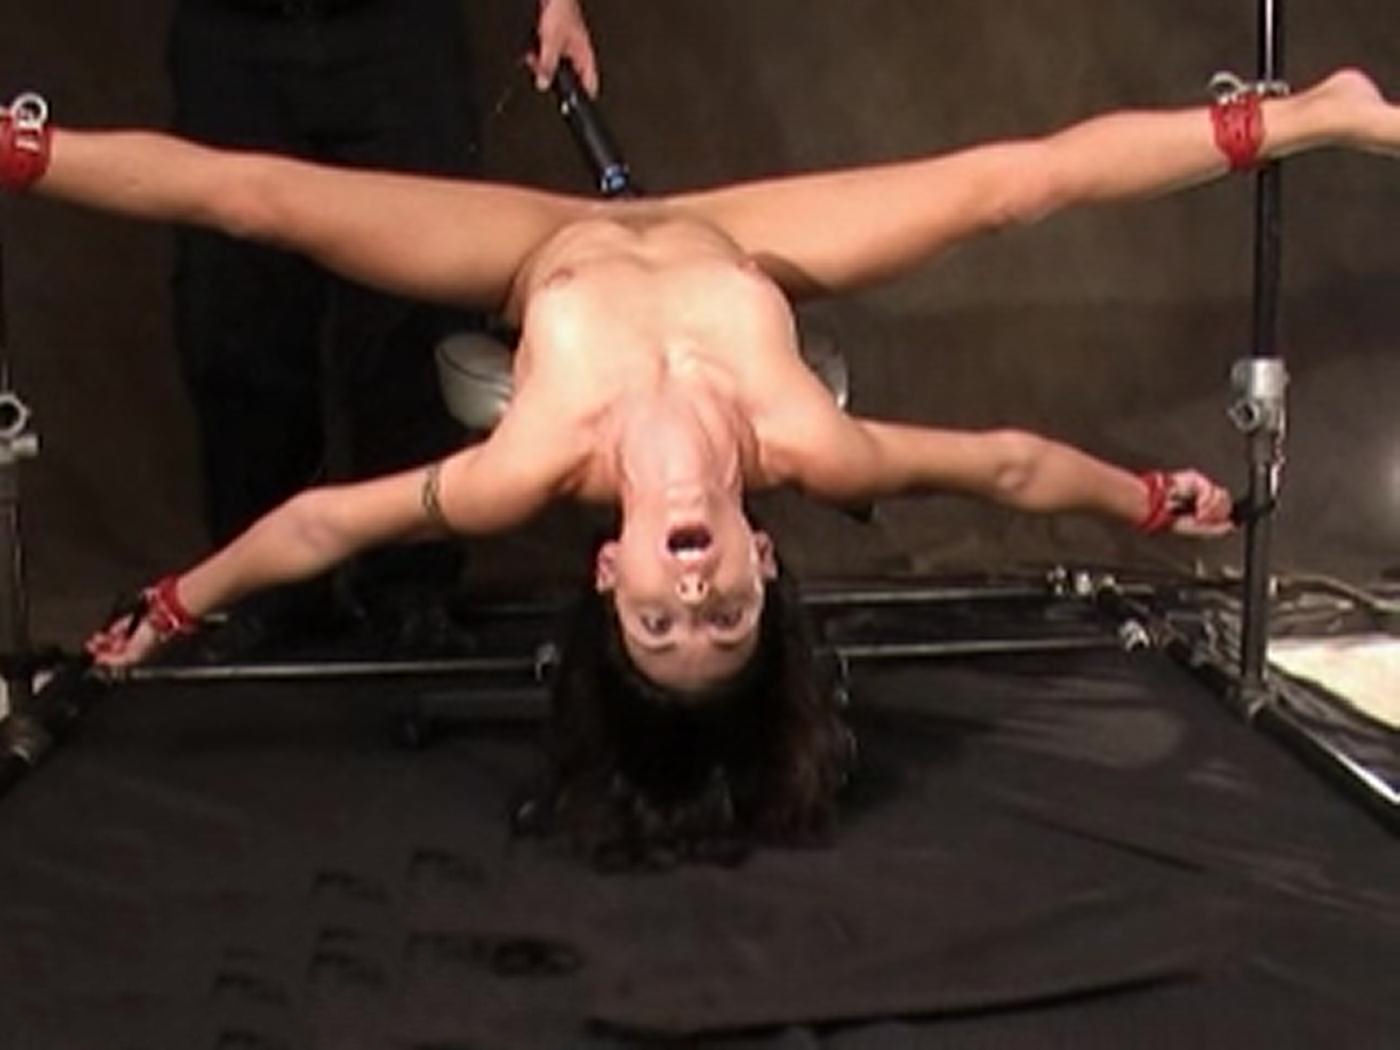 Bondage Girls Tube